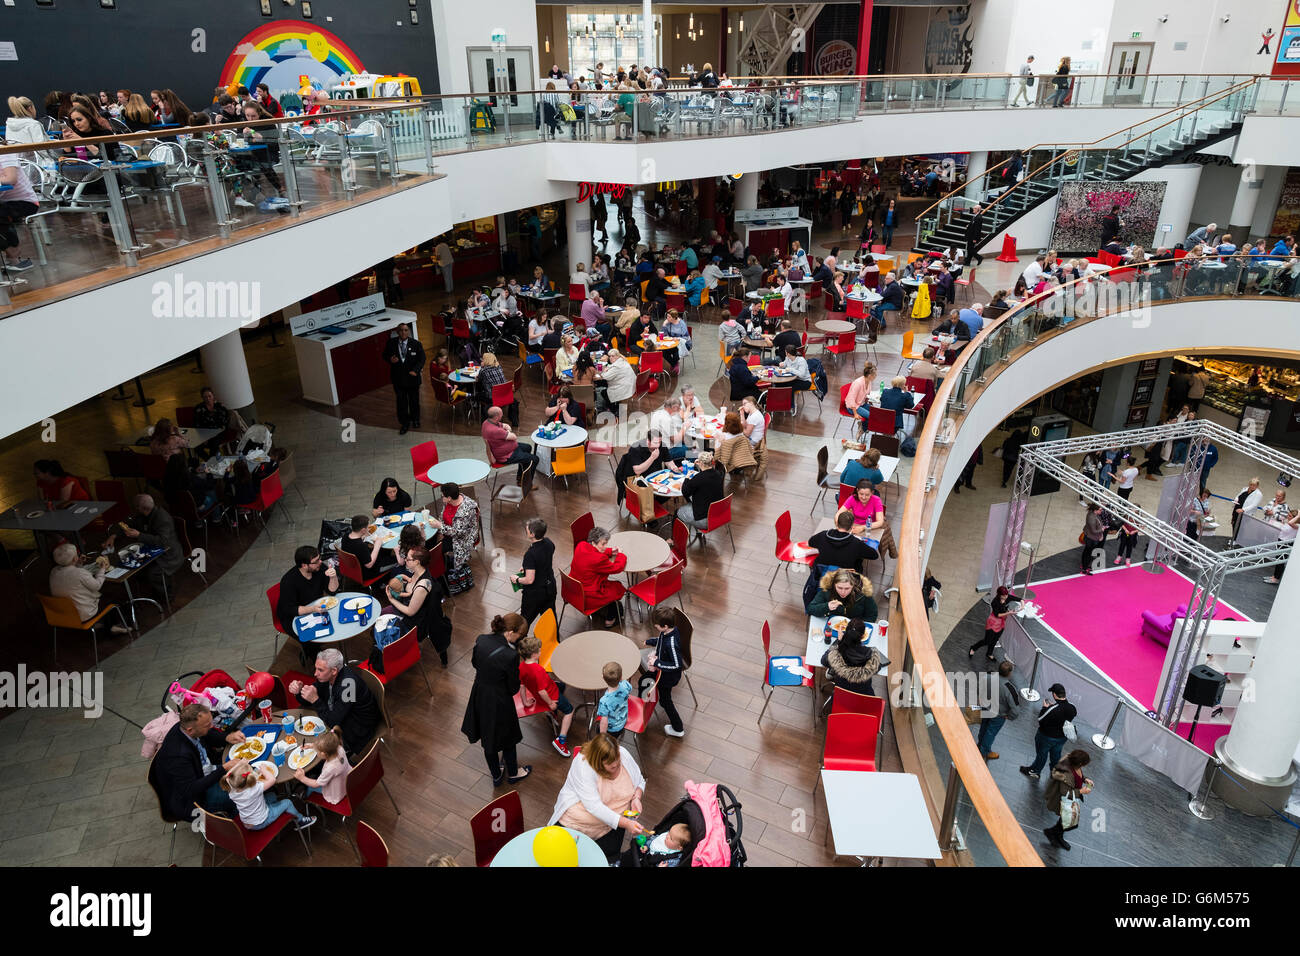 Food court inside St Enoch Centre shopping mall in Glasgow, Scotland,United Kingdom - Stock Image